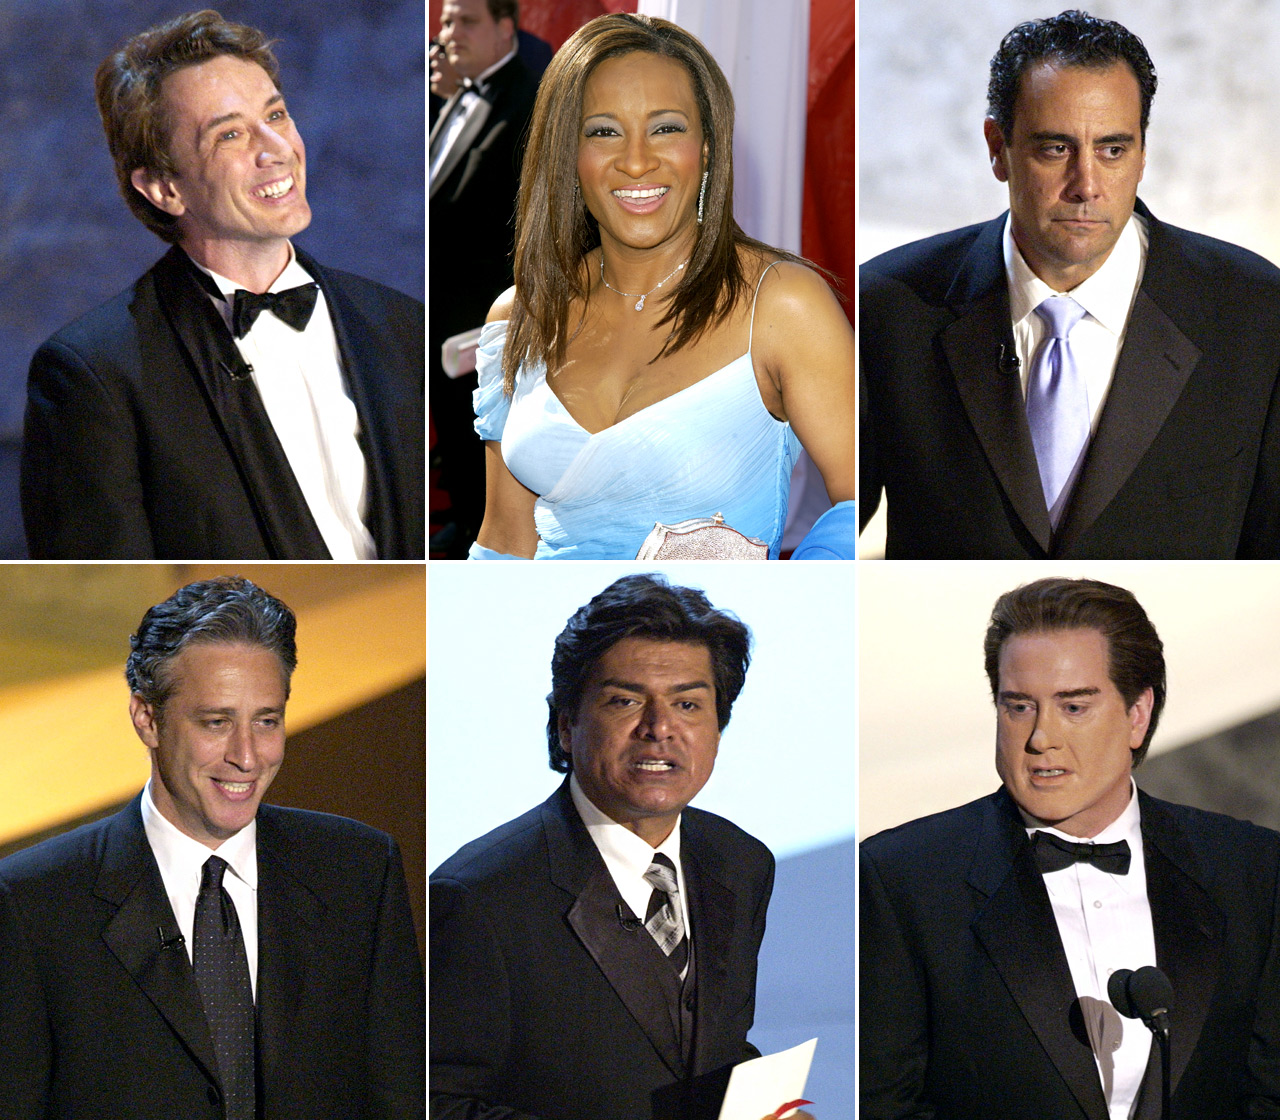 Comics unite! The group was among the 11 comedians hired to host the 2003 show, alongside Ellen DeGeneres, Conan O'Brien and Garry Shandling.